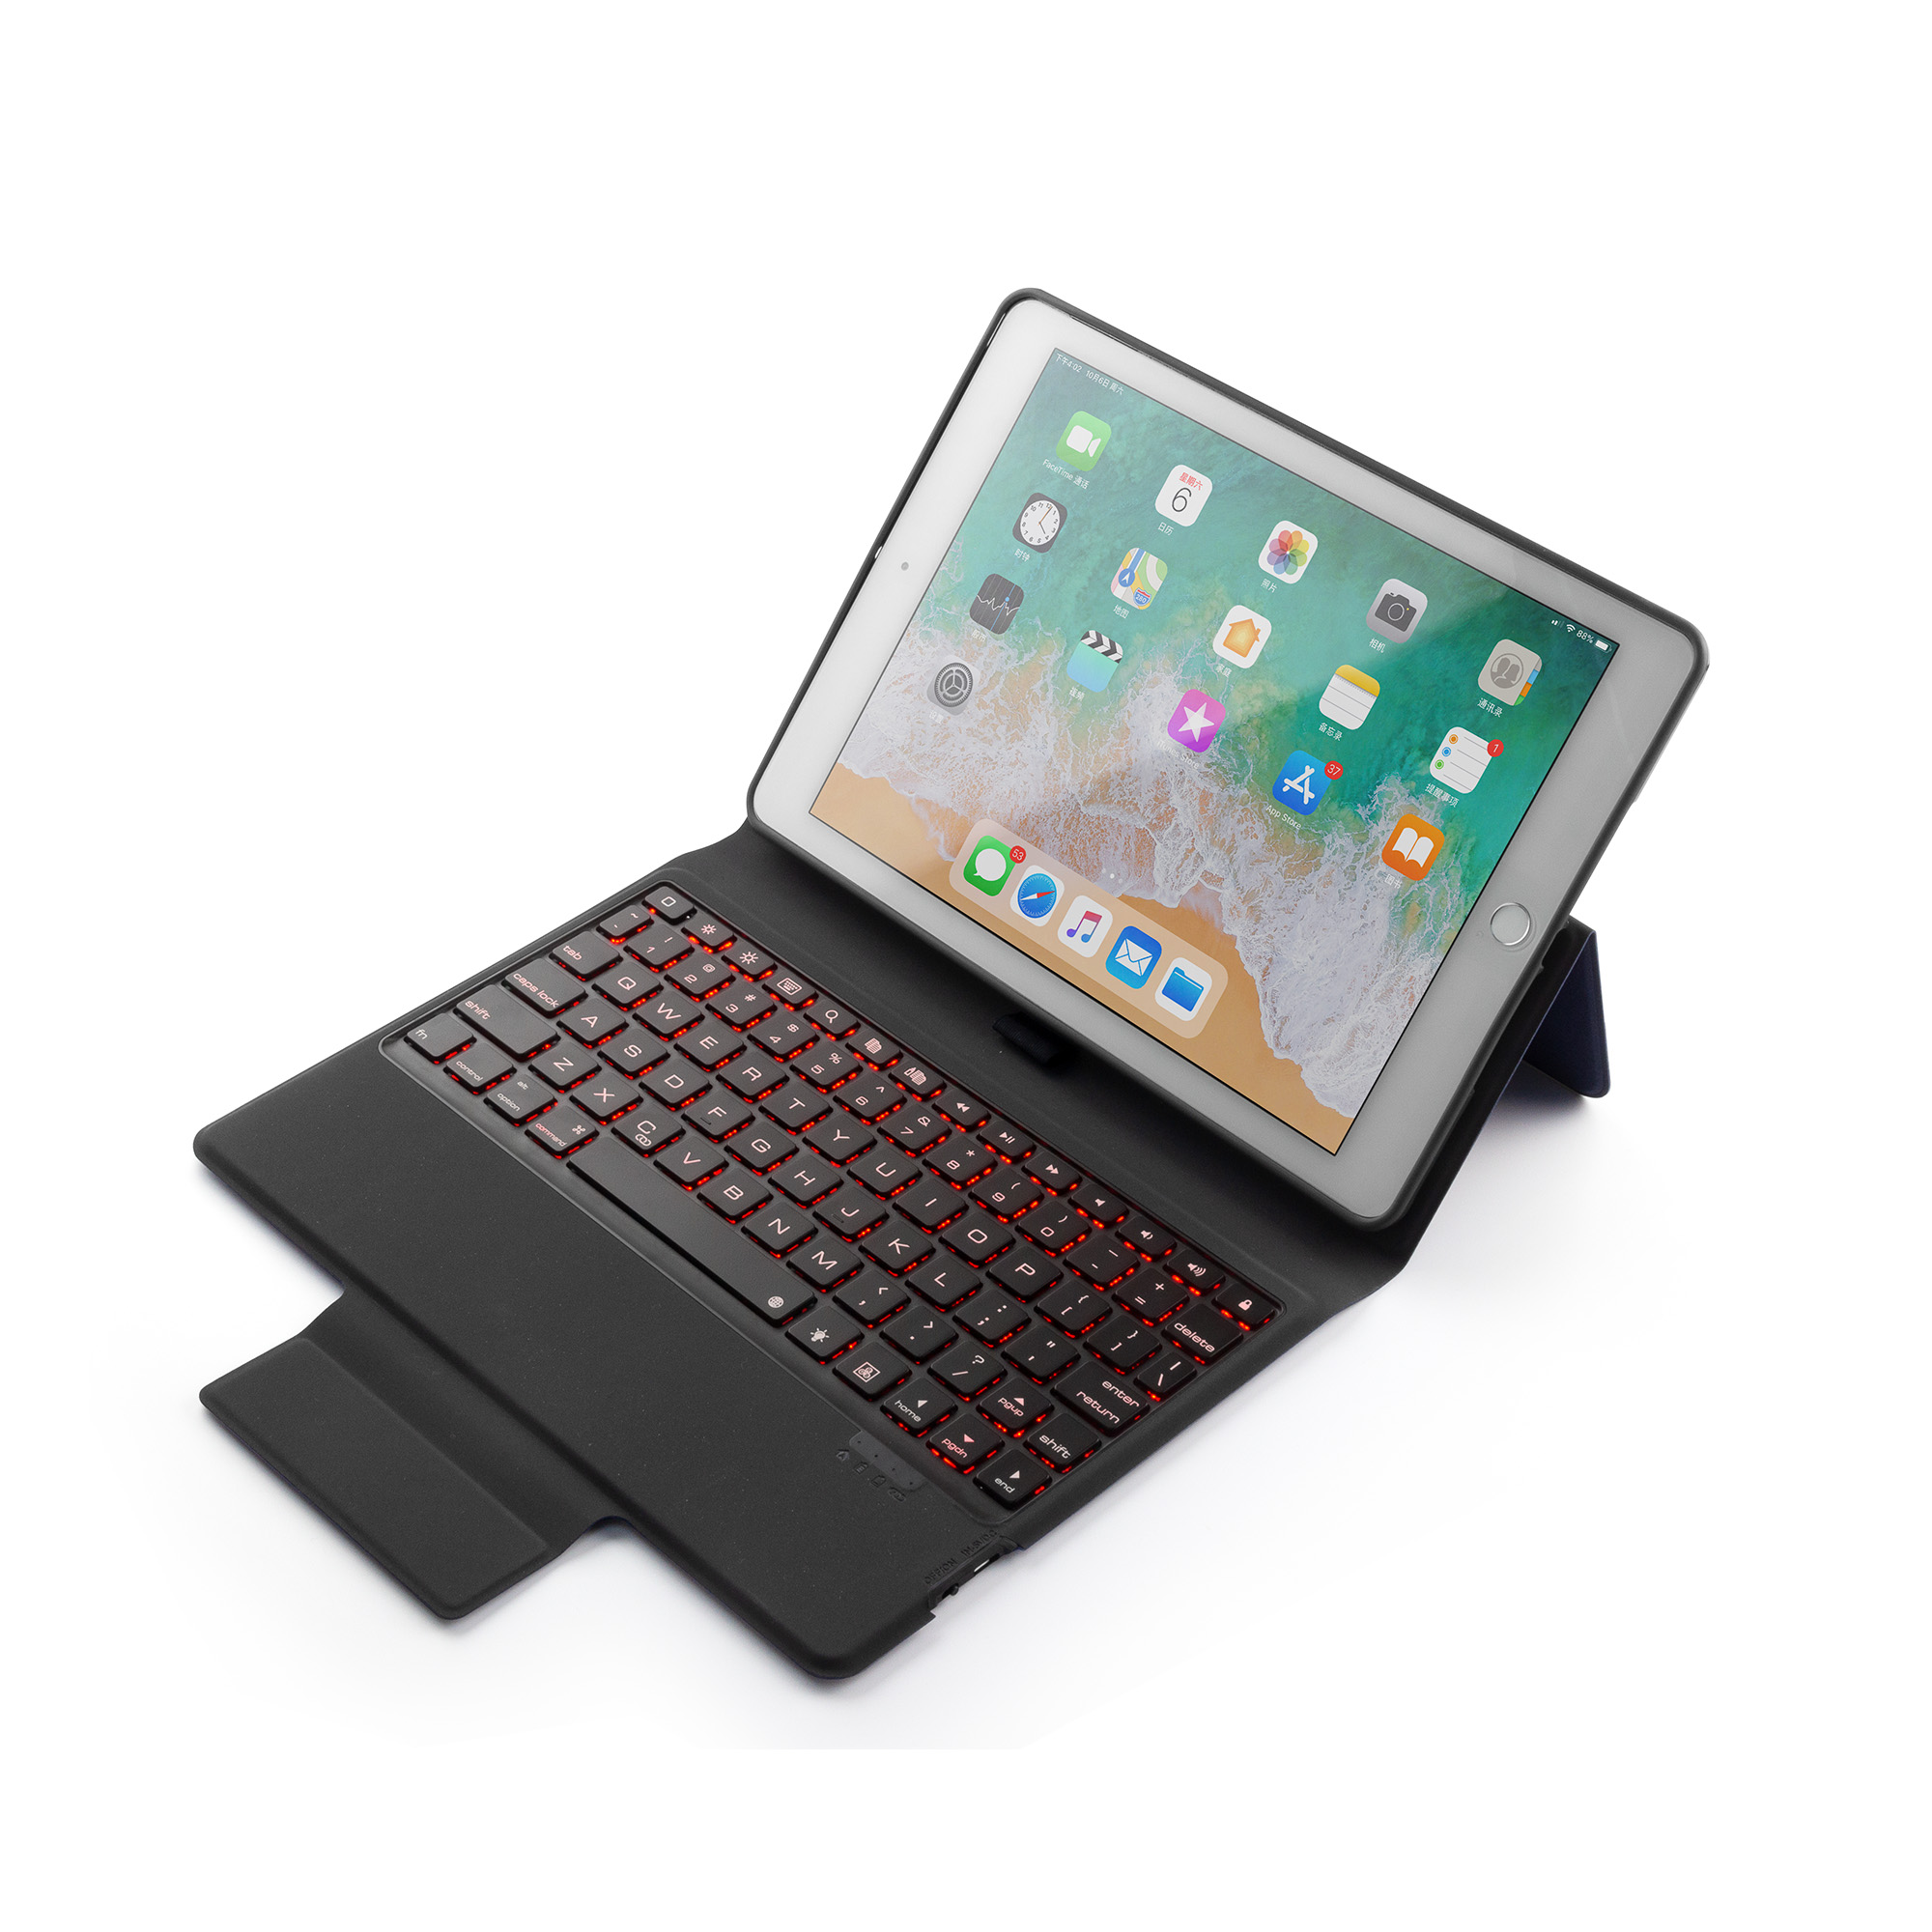 NEW Wireless Bluetooth Keyboard Leather Case For IPad Air 2 Pro 9.7 Inch 2018 With Colorful LED Backlight